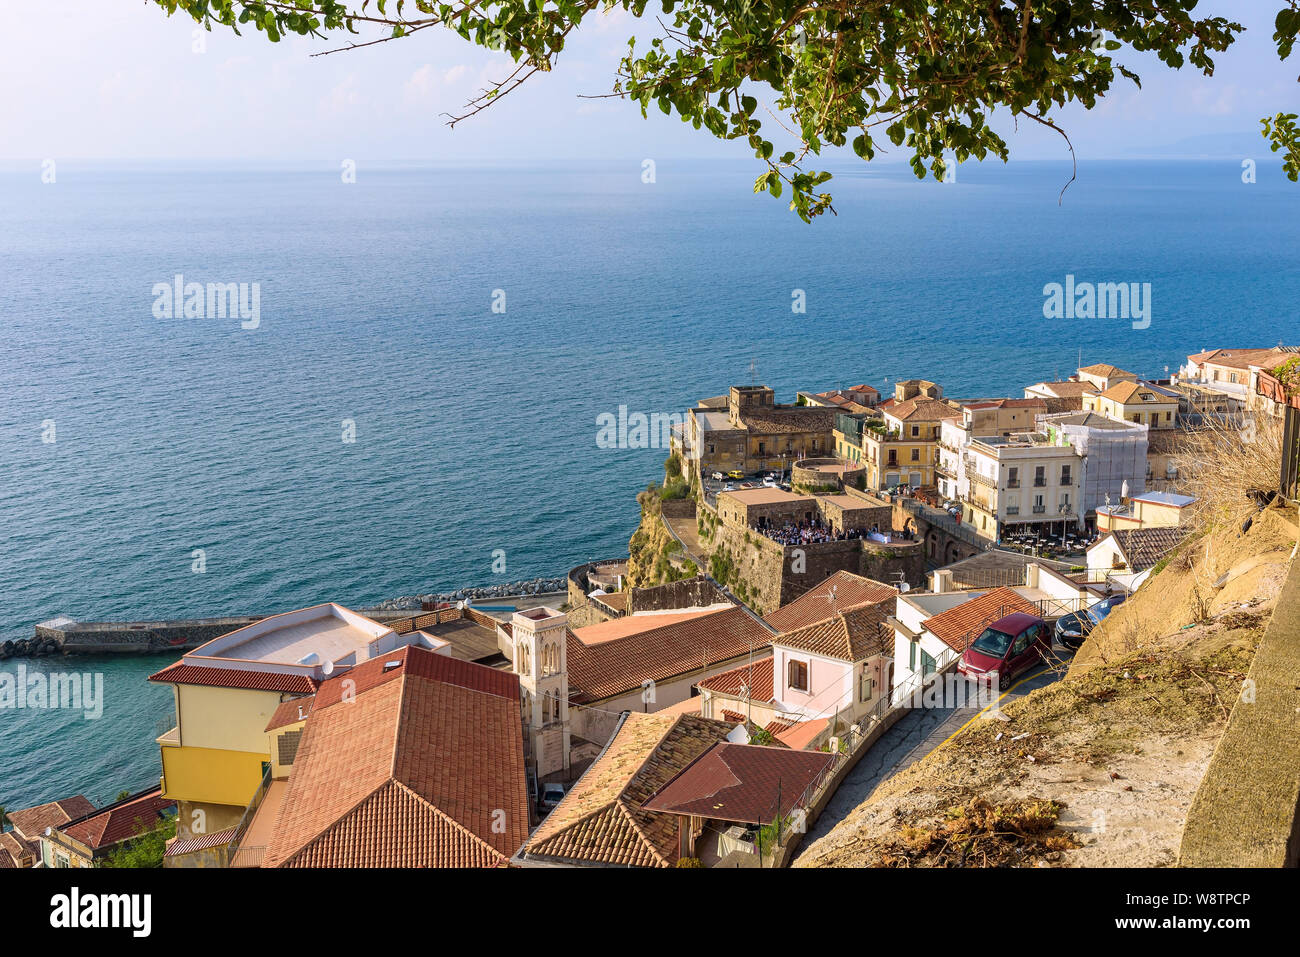 Aerial view of rooftops of Pizzo town in Calabria, southern Italy Stock Photo